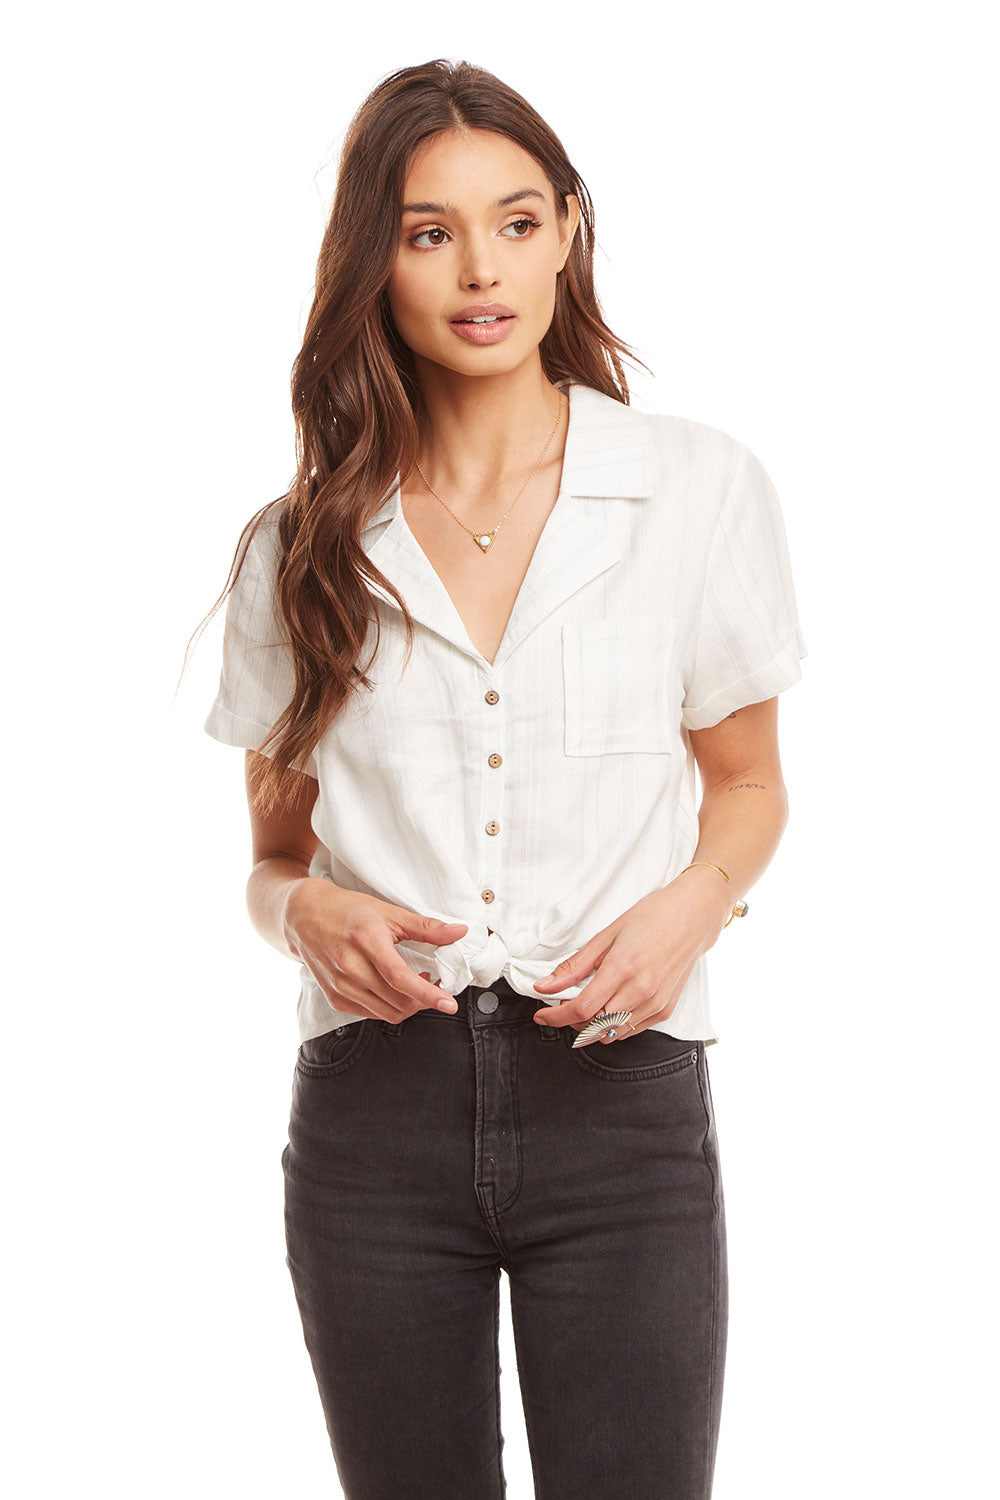 Beachy Linen Rolled S/S Tie Front Button Down Shirt, WOMENS, chaserbrand.com,chaser clothing,chaser apparel,chaser los angeles